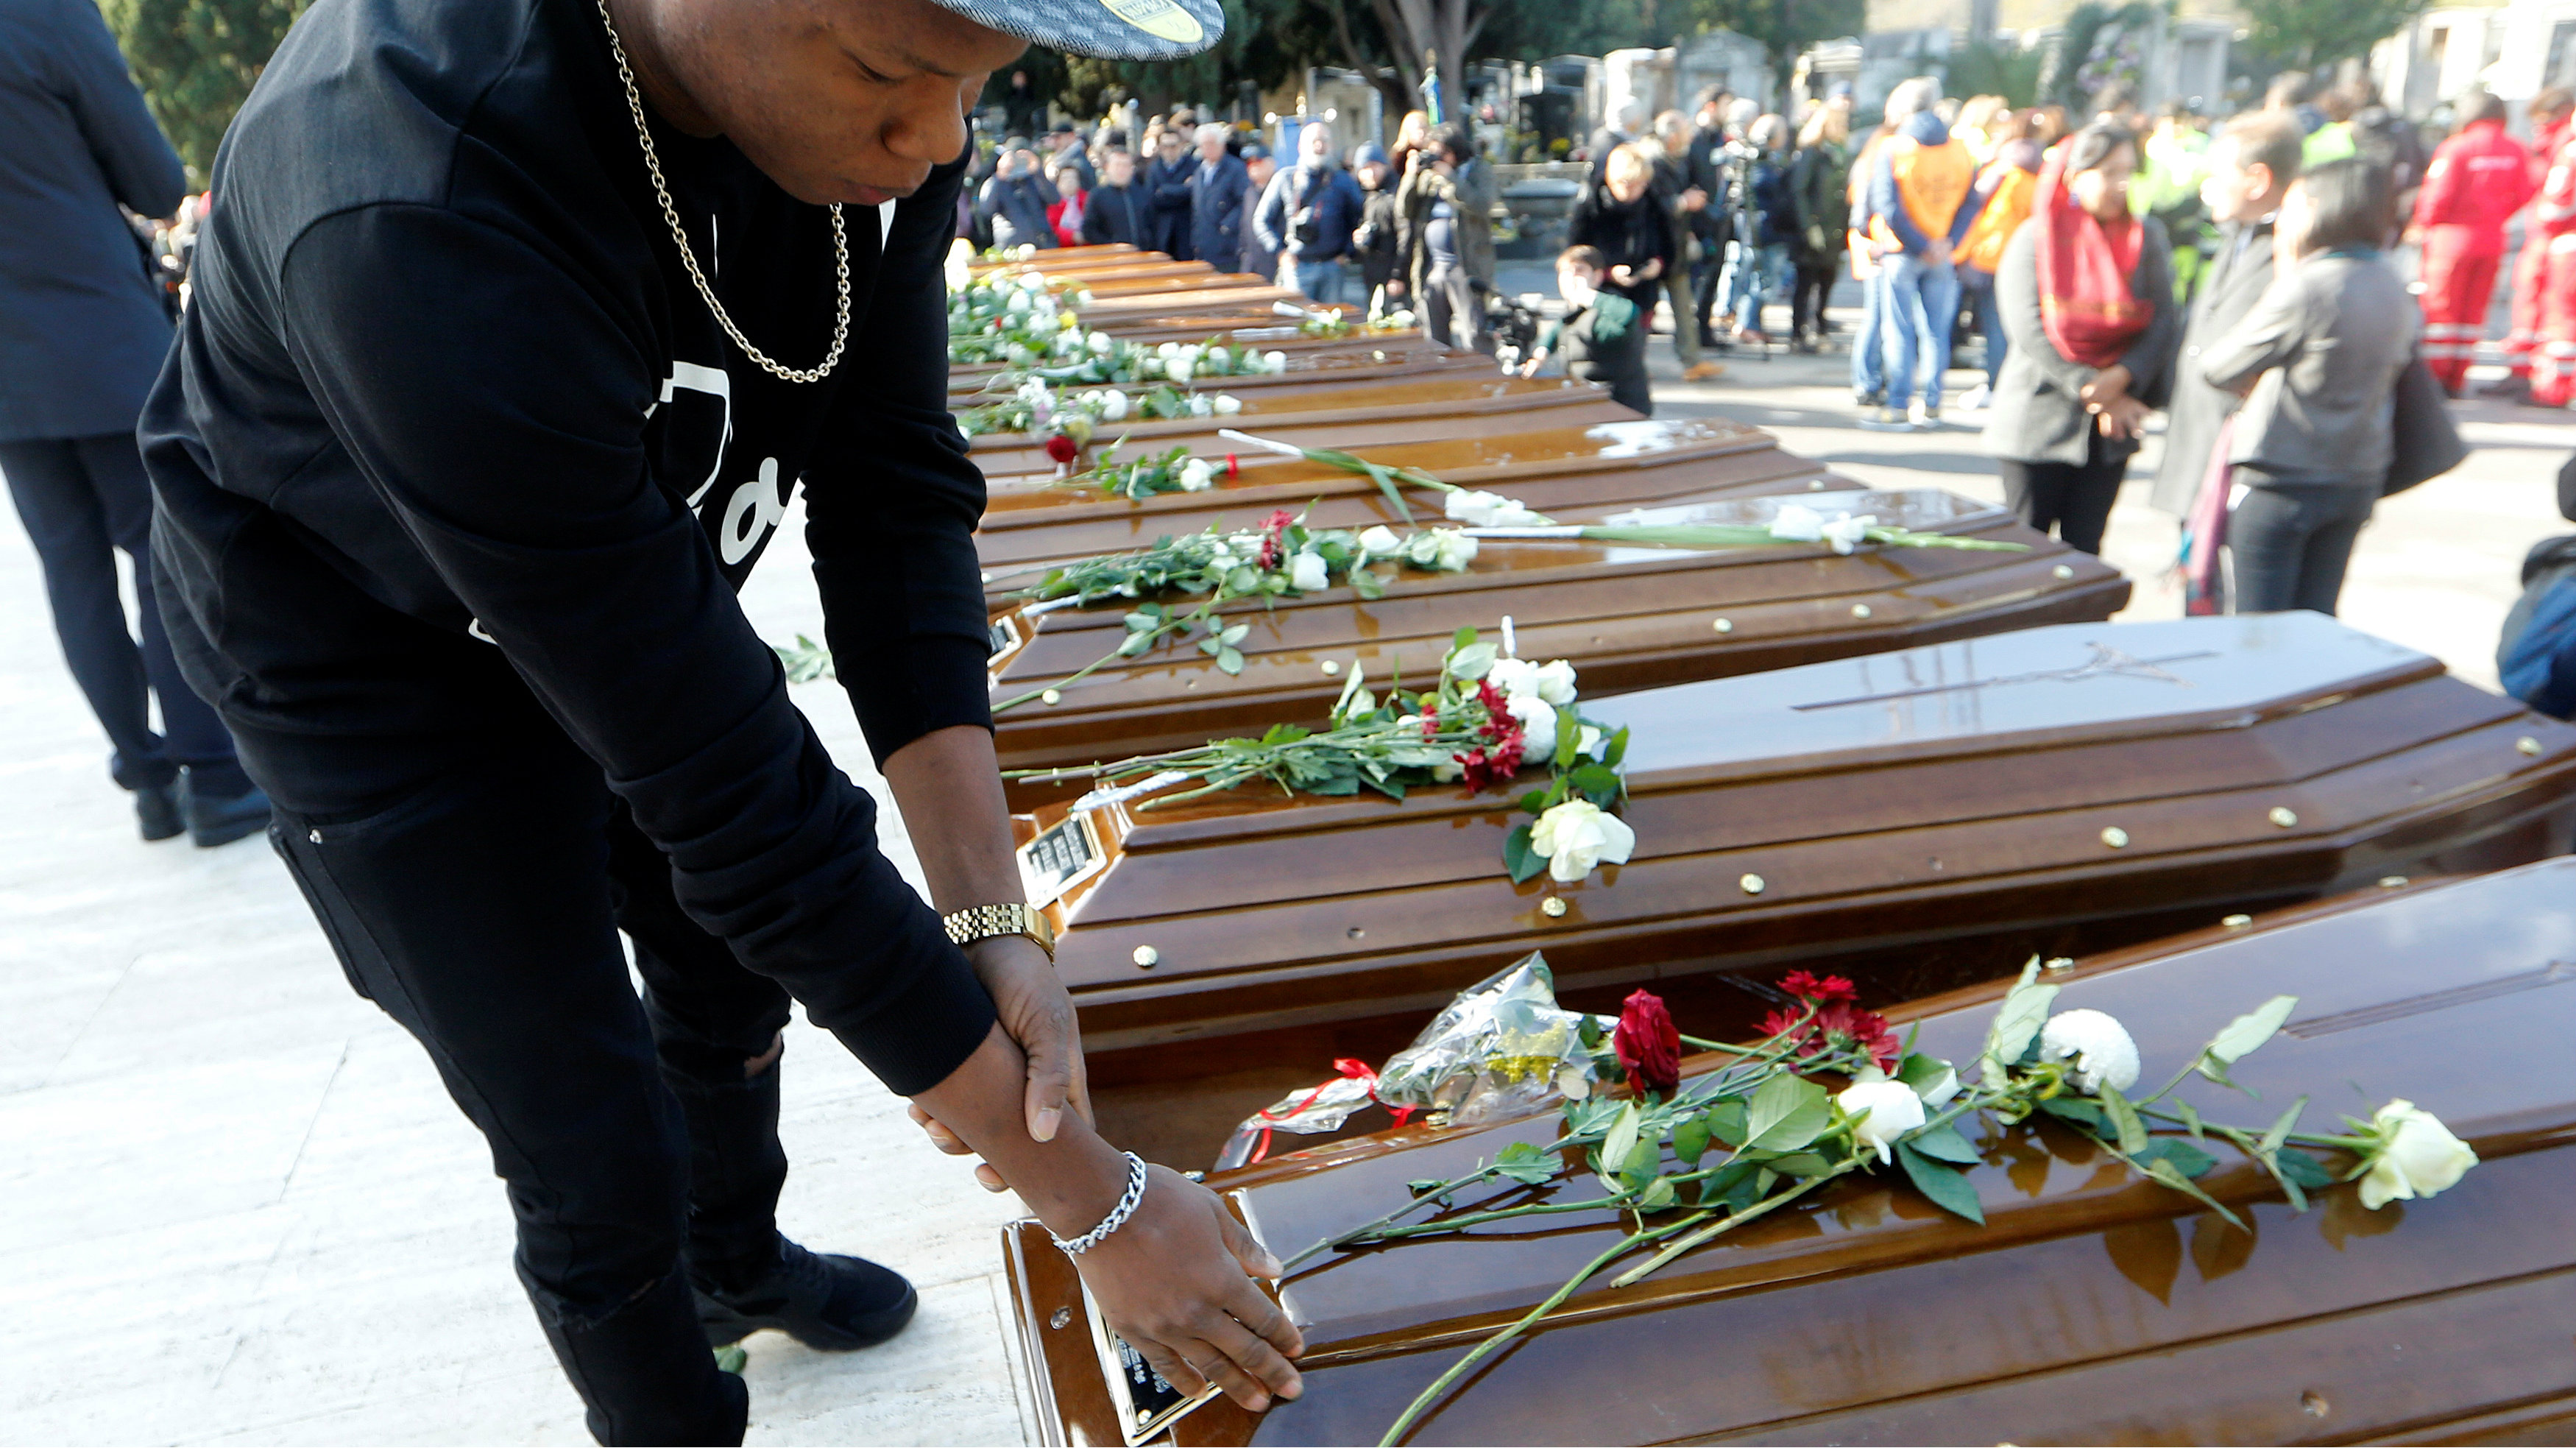 A man touches a coffin ahead of the funeral service for 26 Nigerian women who died last week while crossing the Mediterranean Sea, at the Salerno cemetery, Italy, November 17, 2017.